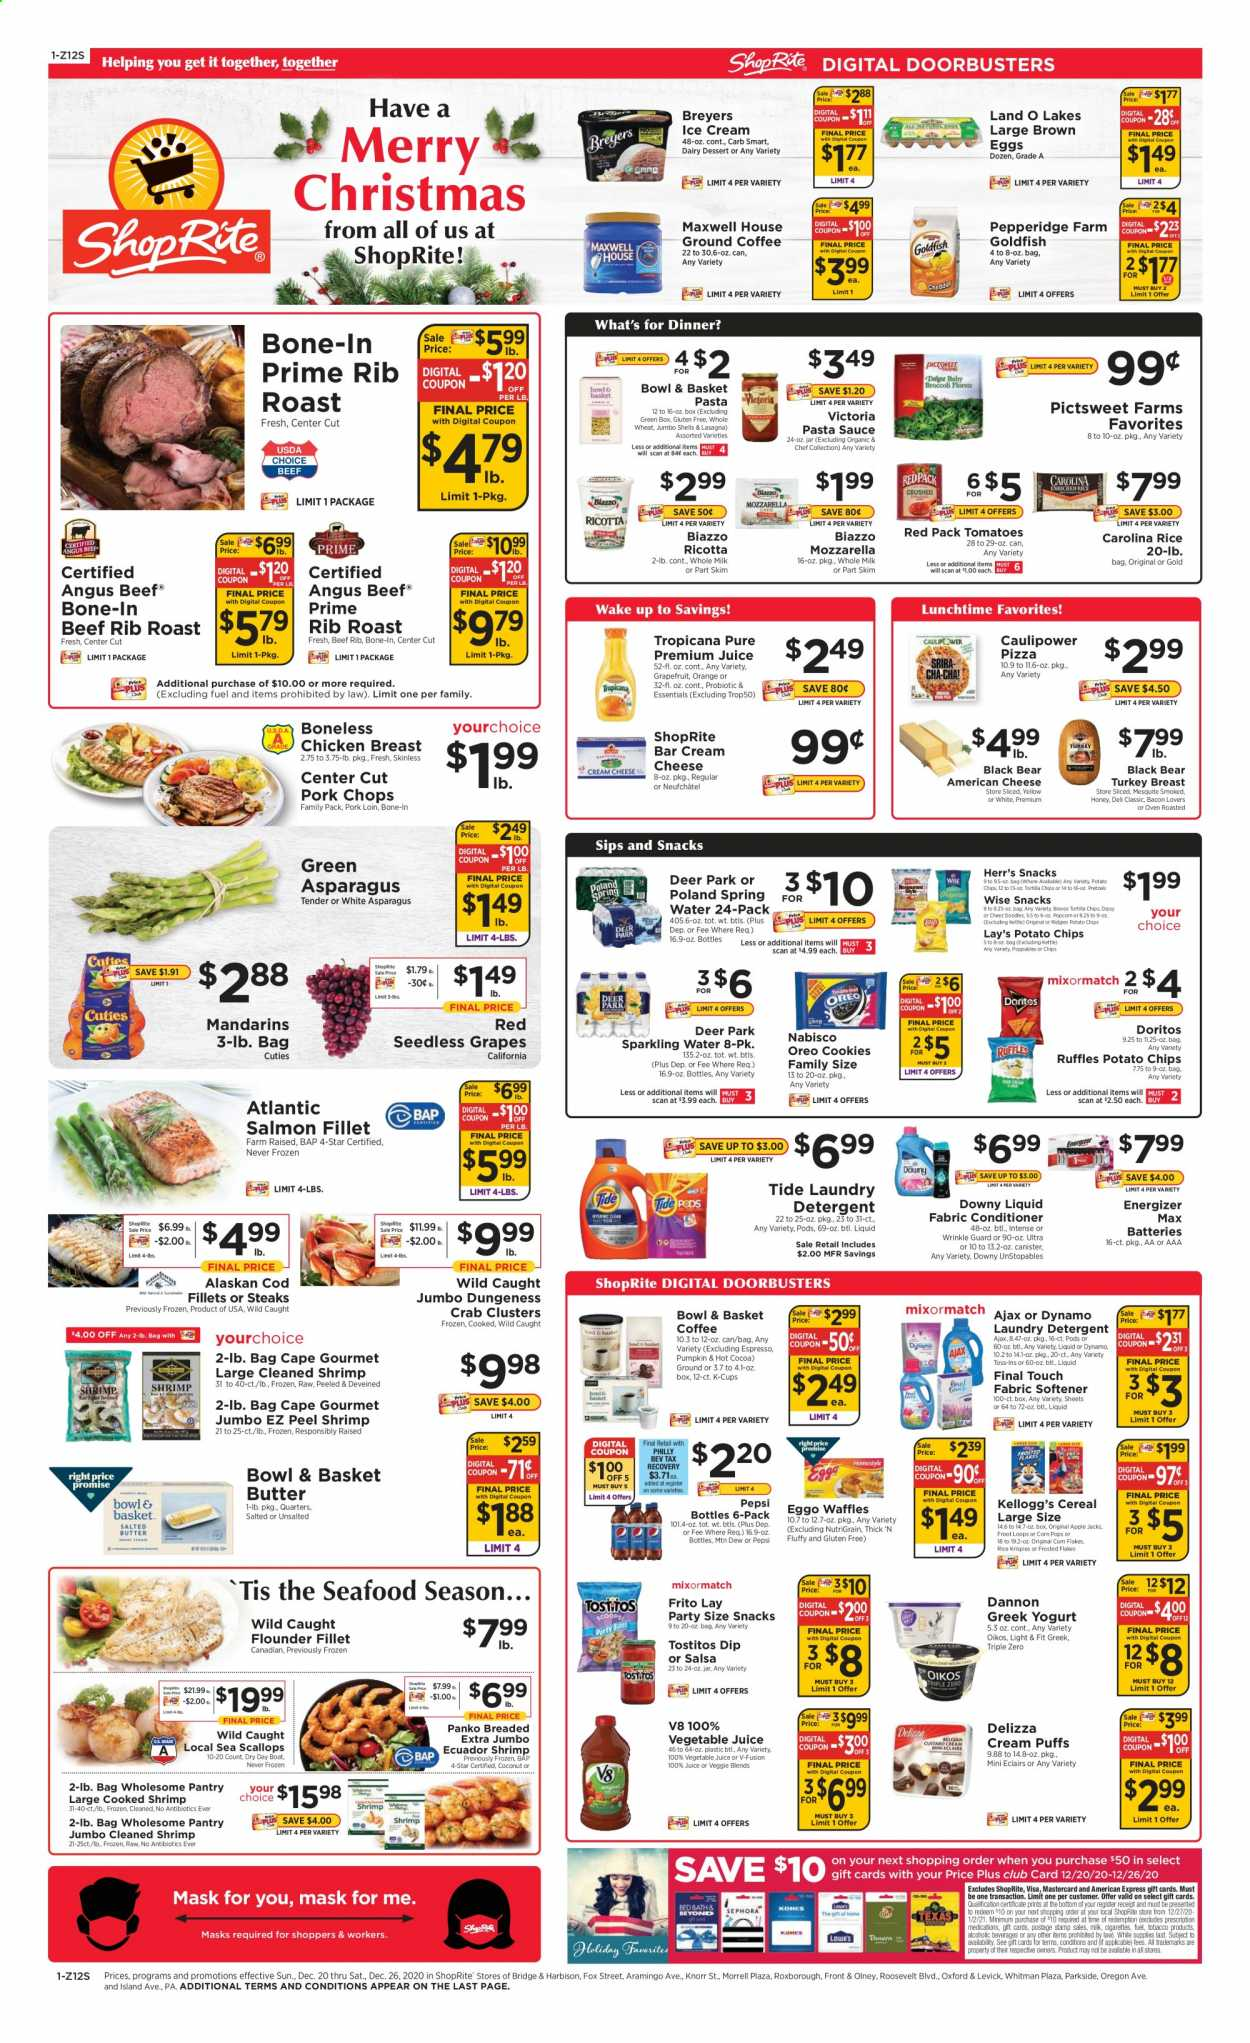 ShopRite Flyer - 12.20.2020 - 12.26.2020 - Sales products - american cheese, apples, asparagus, bacon, basket, battery, beef meat, boat, box, butter, cereals, cocoa, cod, conditioner, cookies, corn, cream cheese, deer, detergent, Doritos, Downy, eggs, Energizer, flounder, frozen, fuel, grapes, greek yogurt, mask, Maxwell House, milk, mozzarella, neufchatel, rib roast, rice, ricotta, salmon, salmon fillet, scallops, seedless grapes, spring water, Tide, tomatoes, tortilla chips, turkey, turkey breast, Unstopables, honey, ice cream, jar, pizza, pork chops, pork loin, pork meat, potato chips, pretzels, pumpkin, chicken, chicken breast, pasta sauce, Pepsi, oven, orange, Oreo, chips, cheese, juice, coconut, snack, sparkling water, salsa, softener, seafood, pasta, Lay's, corn flakes, Knorr, canister, fabric conditioner, sauce, flakes, crab, laundry detergent, Apple, shrimps, kettle, vegetable, essentials, spring. Page 1.